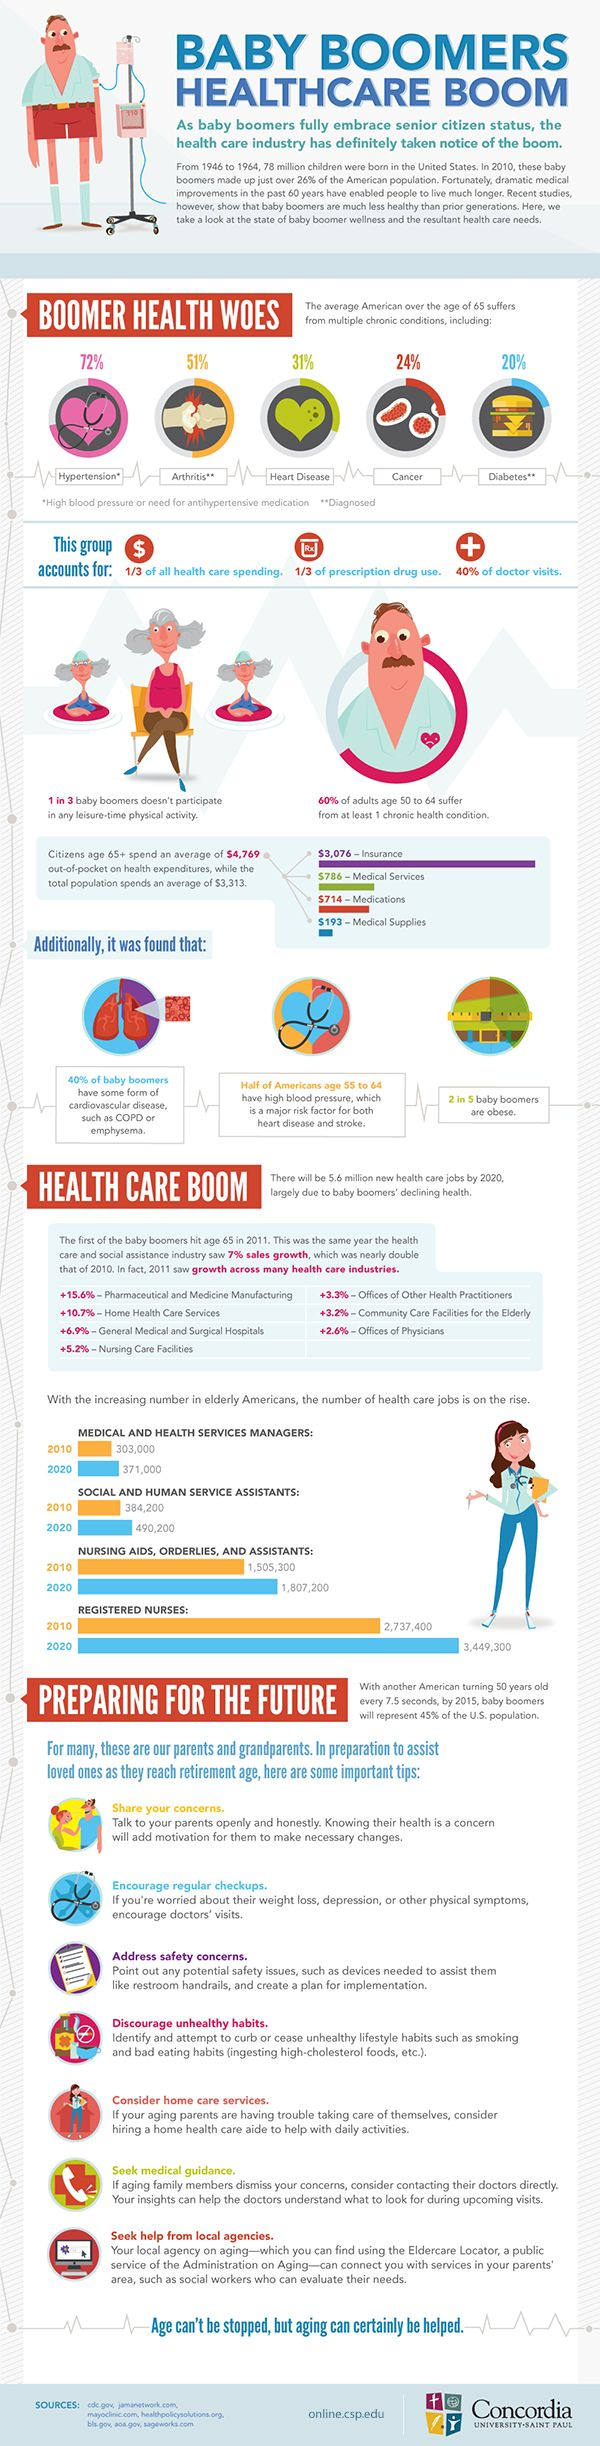 How The Baby Boomer Generation Is Changing The U.S. Healthcare System | VisualNews.com